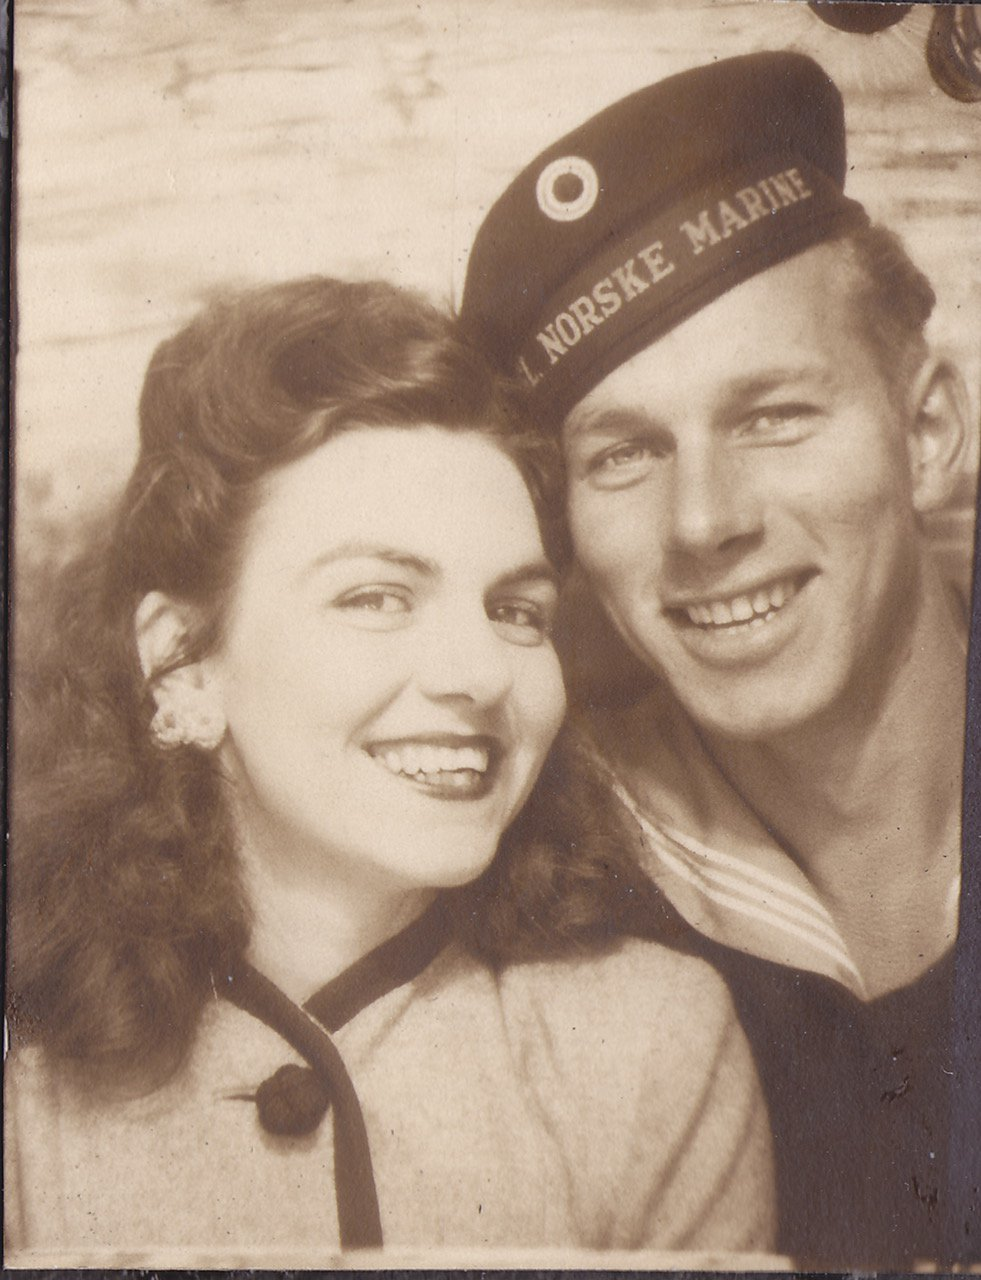 72-Year-Old Love Letter Returned to WWII Veteran